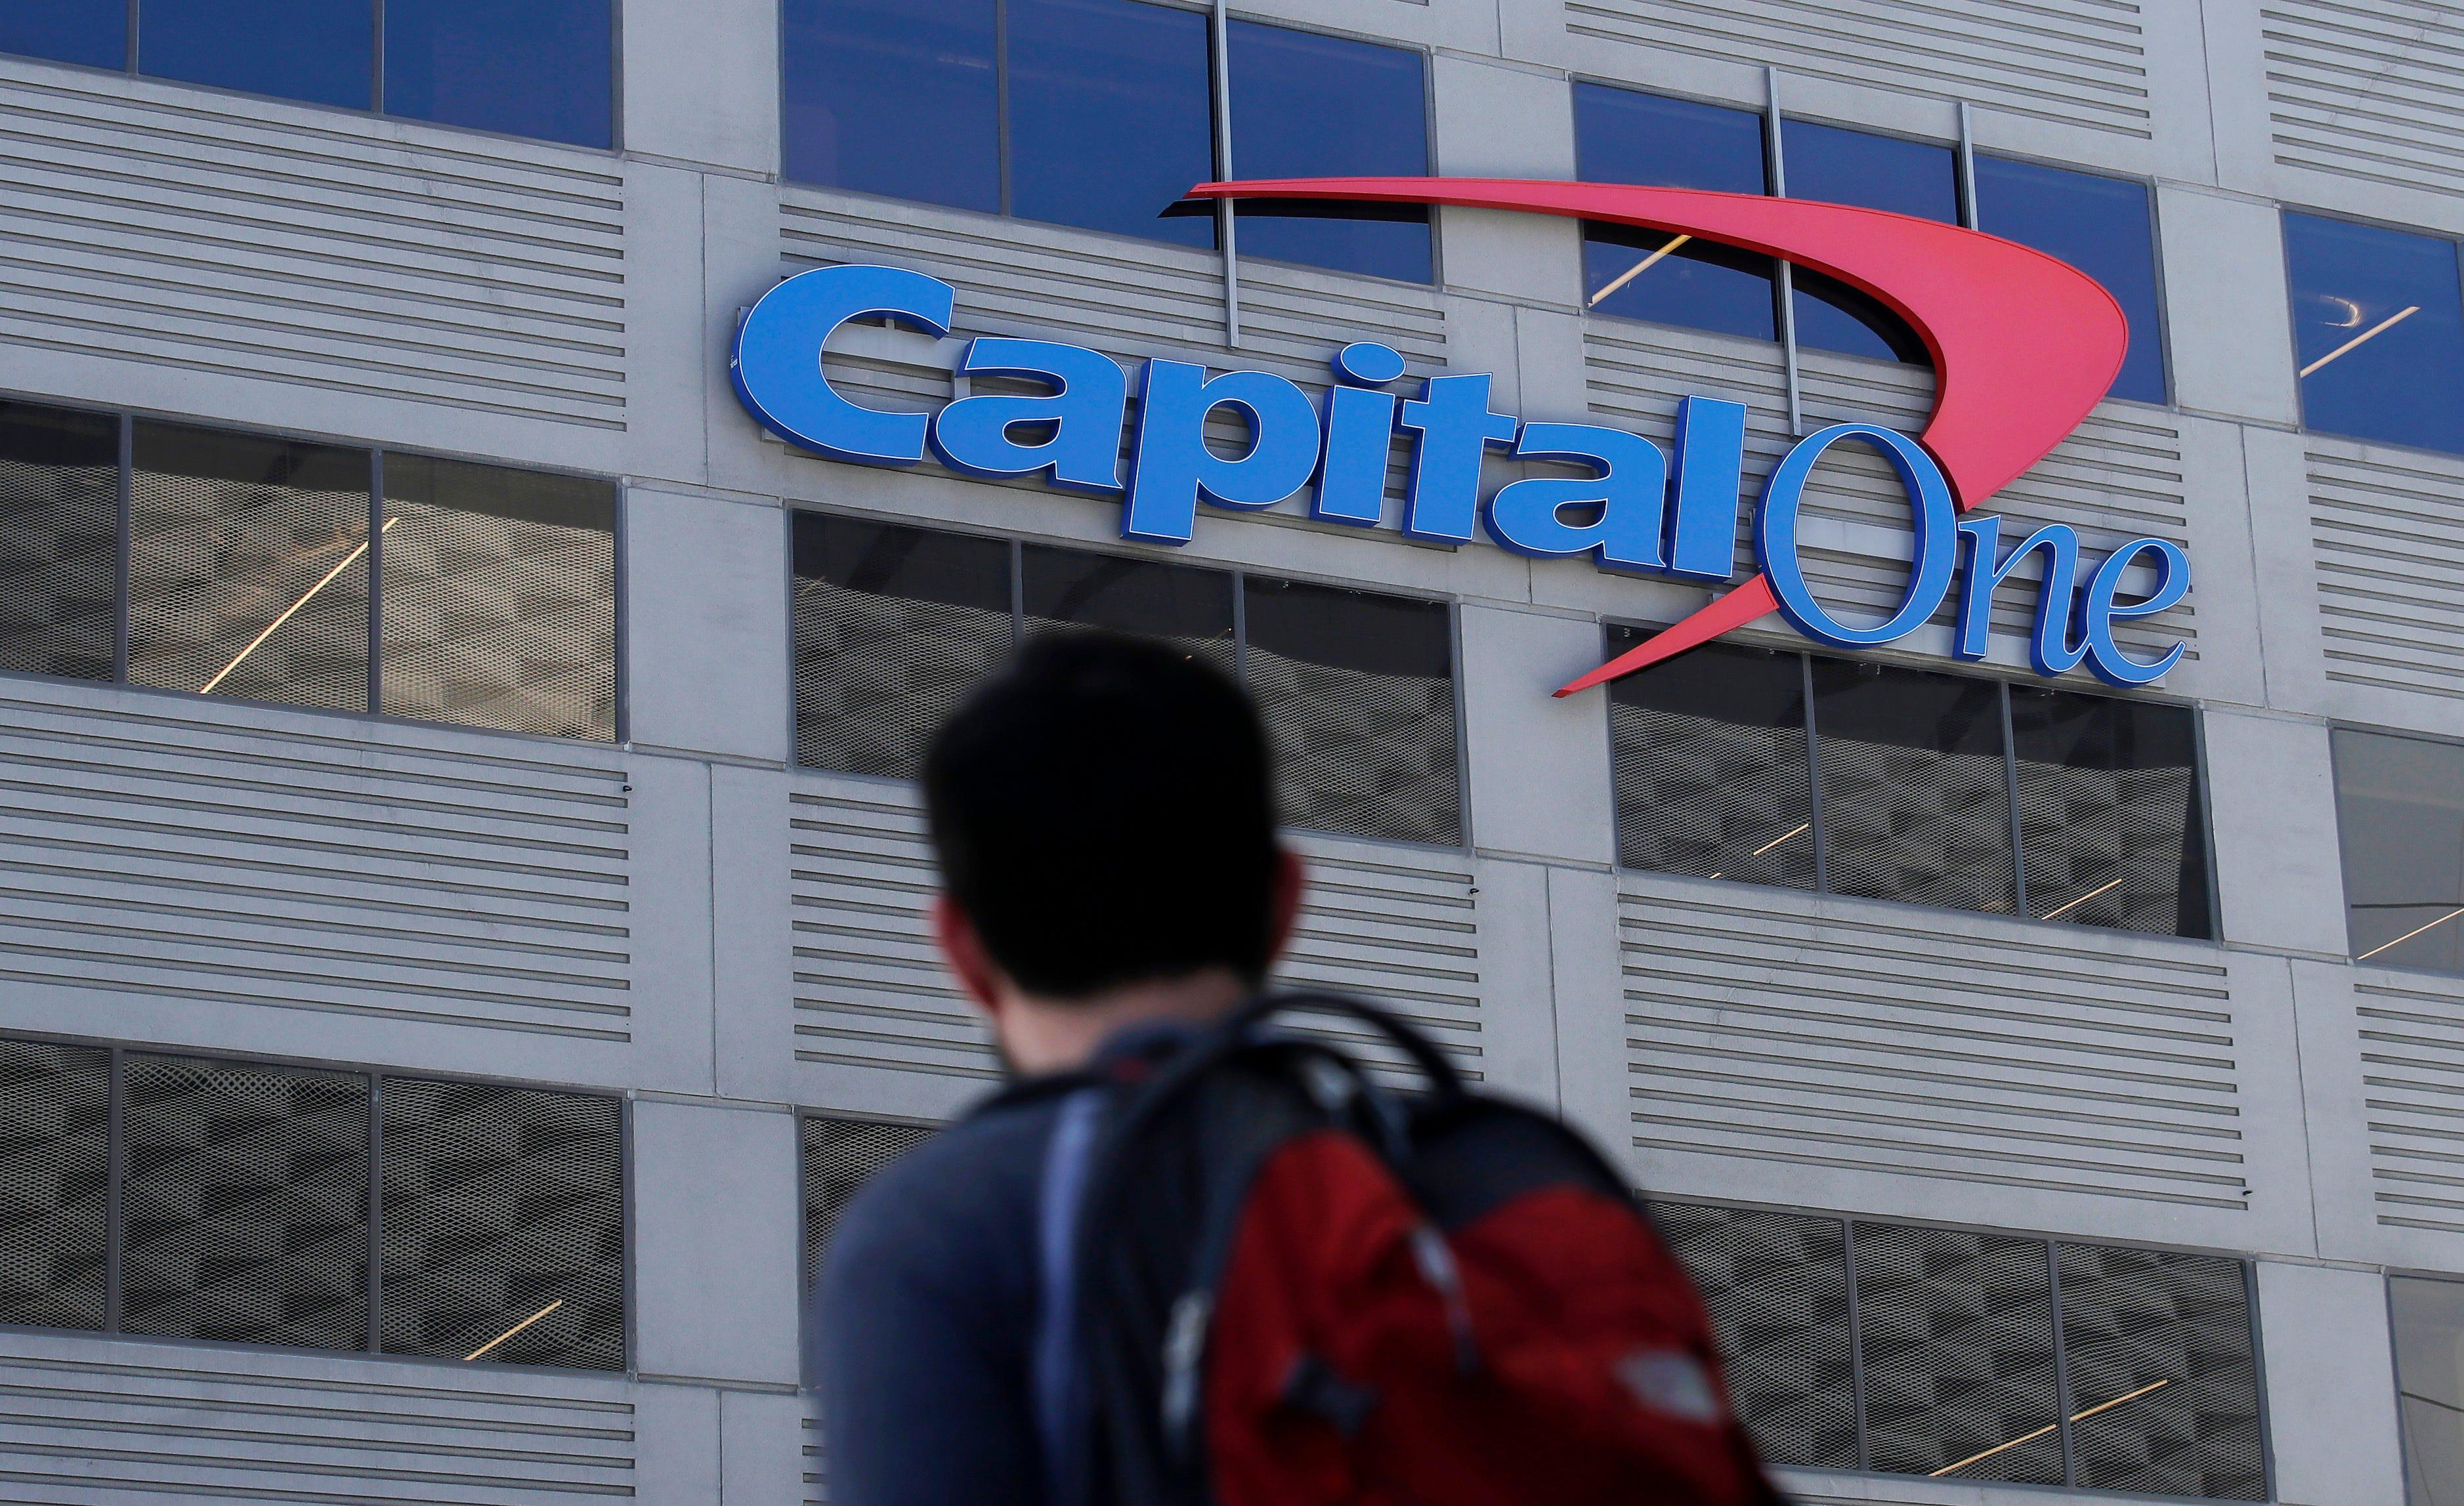 Capital One suspect indicted by federal grand jury on wire fraud and data theft charges